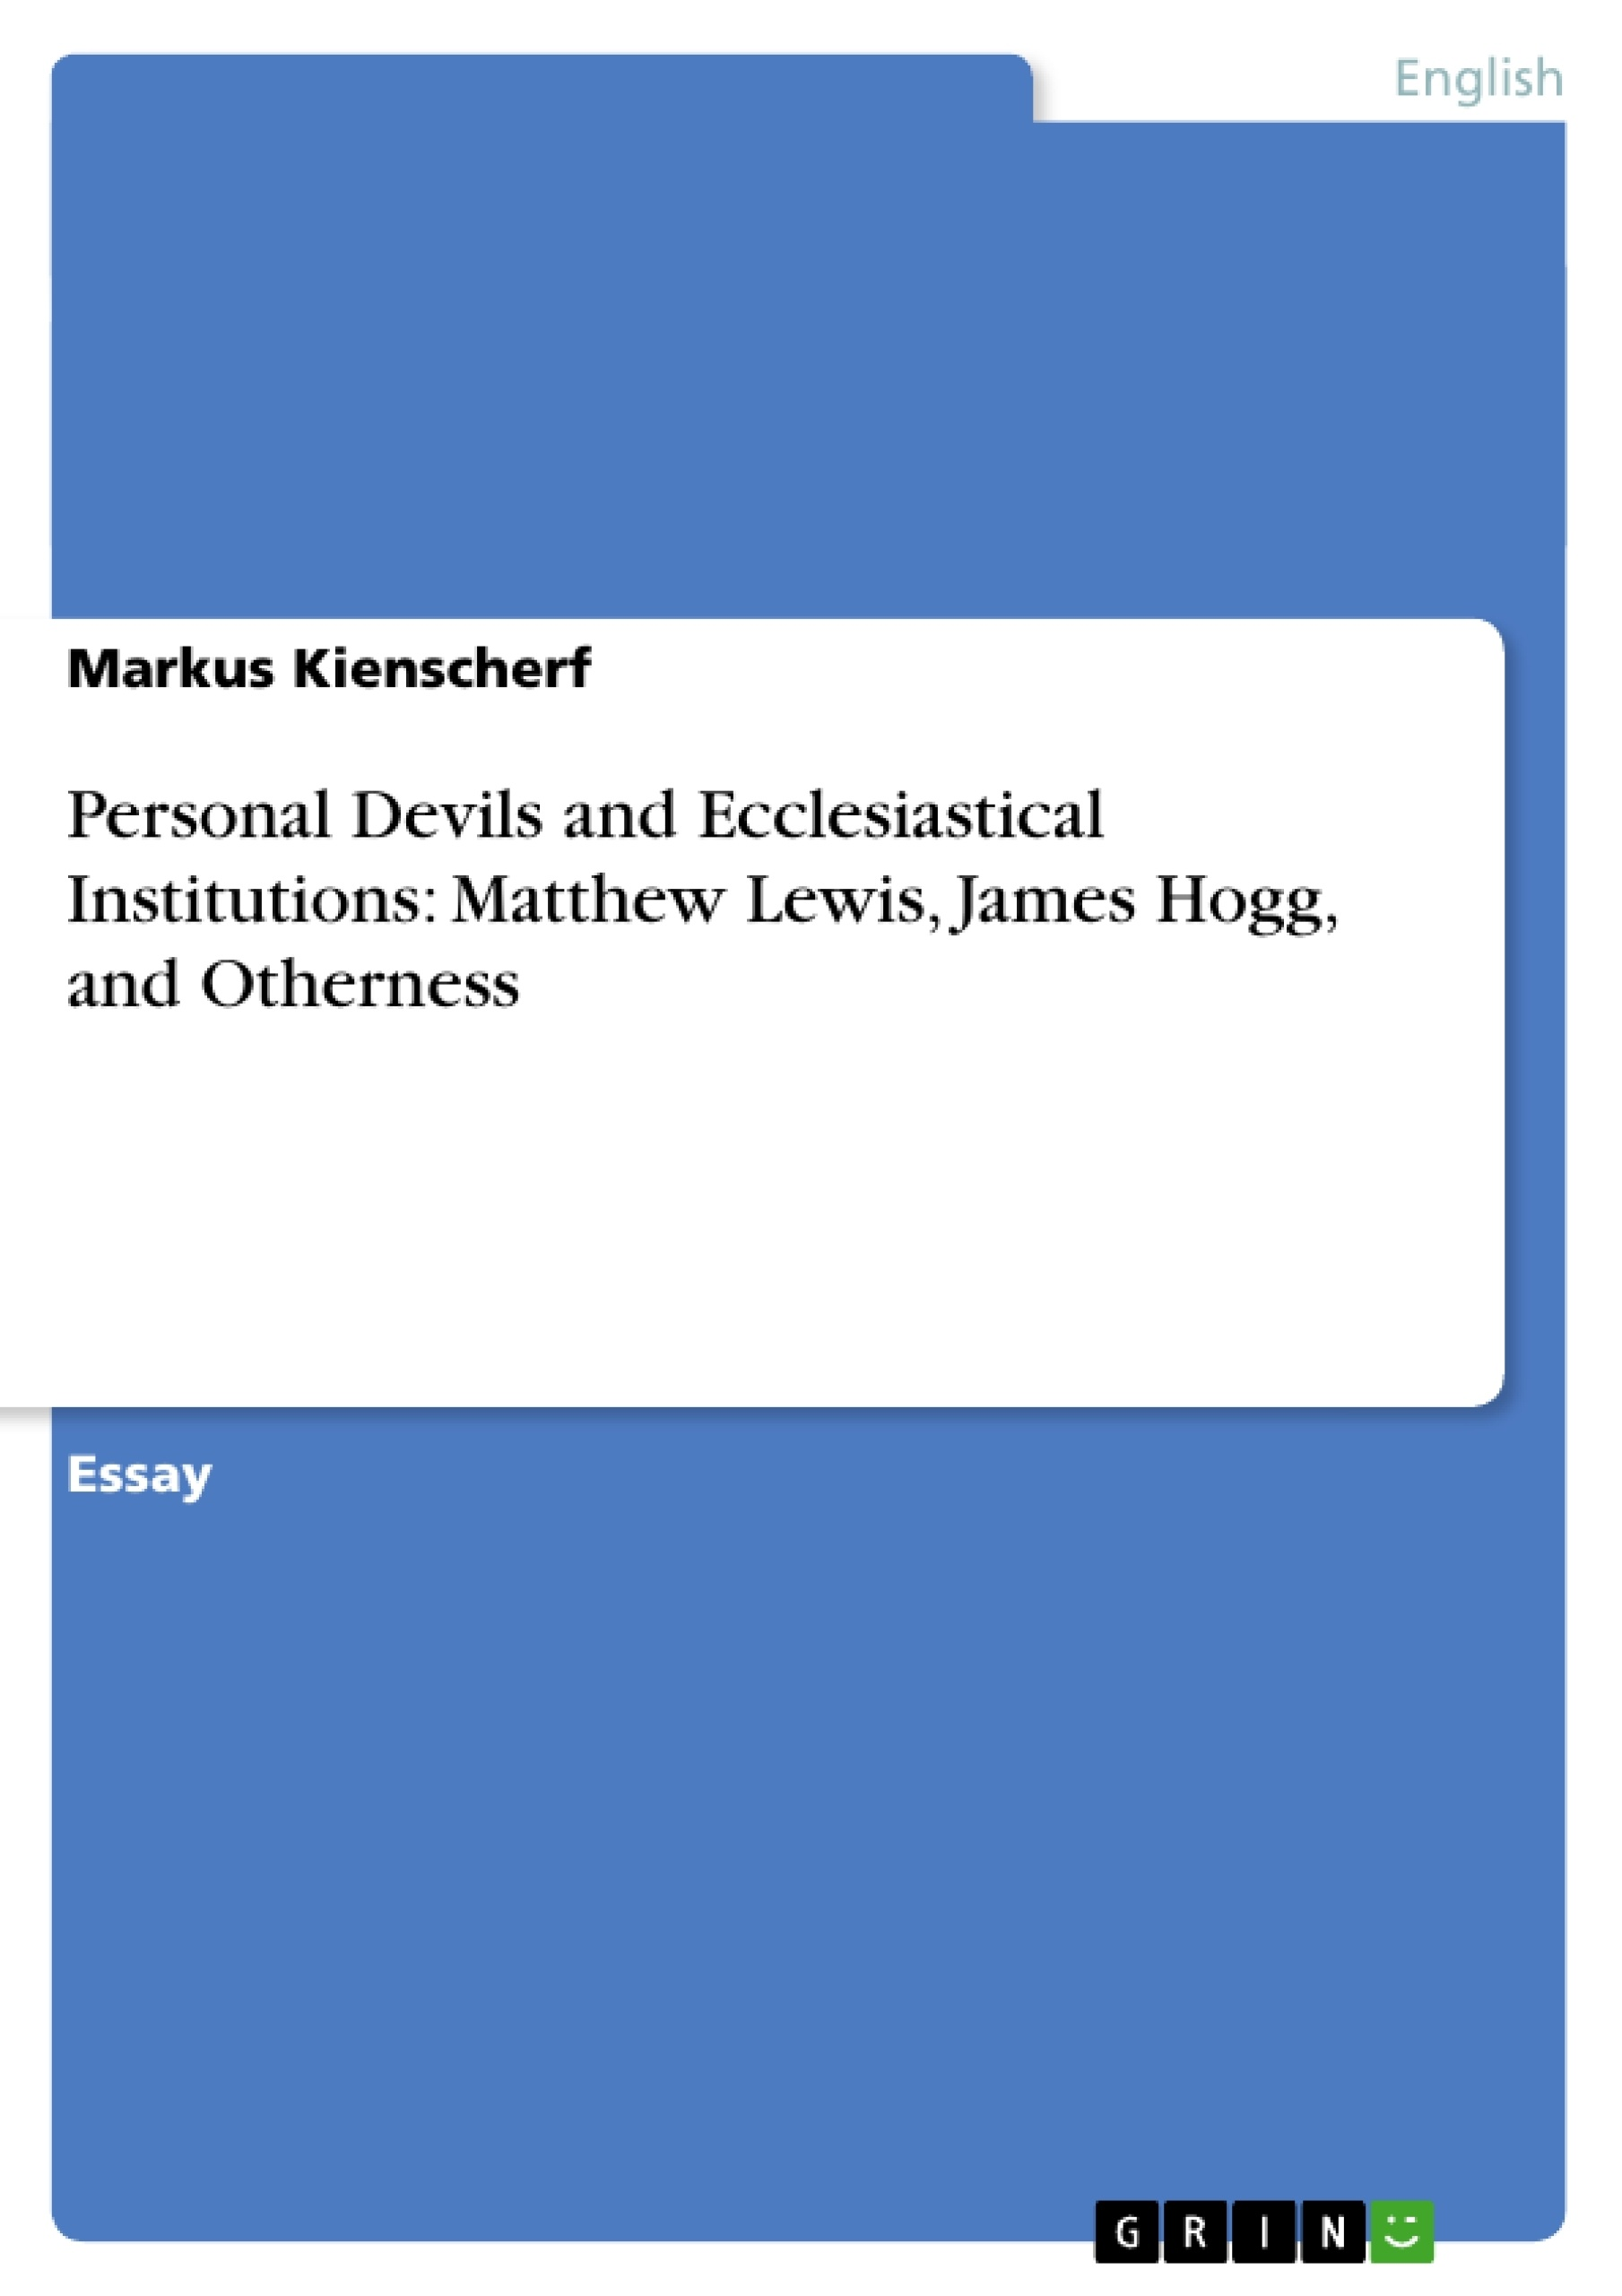 Title: Personal Devils and Ecclesiastical Institutions: Matthew Lewis, James Hogg, and Otherness